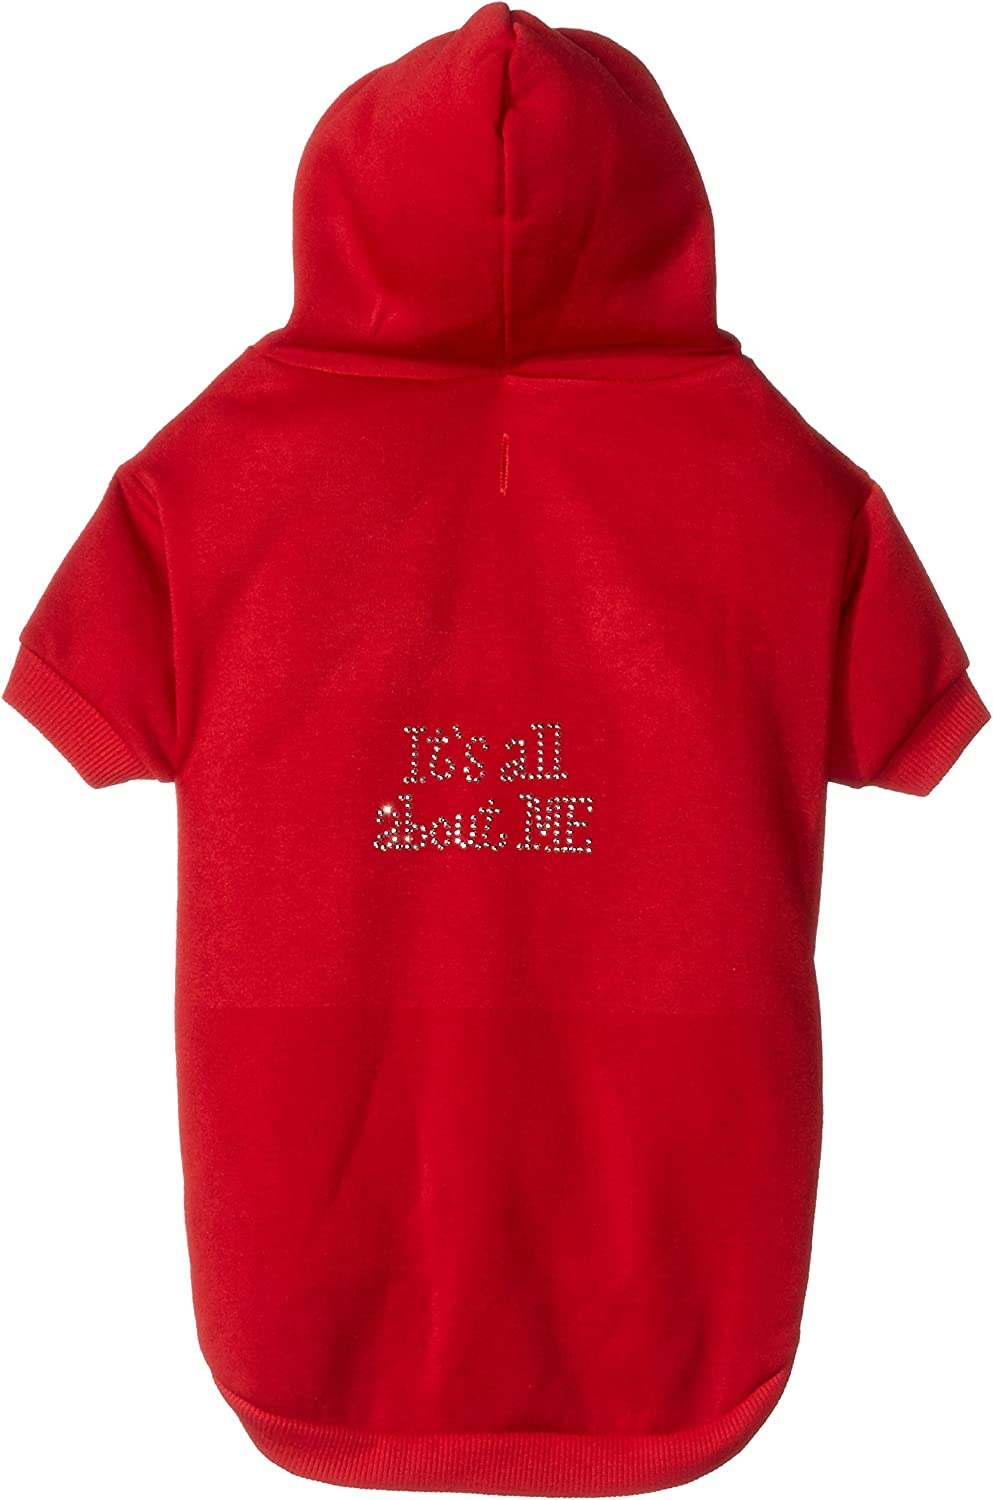 Mirage Pet Products 20Inch It's All About Me Rhinestone Hoodies, 3XLarge, Red